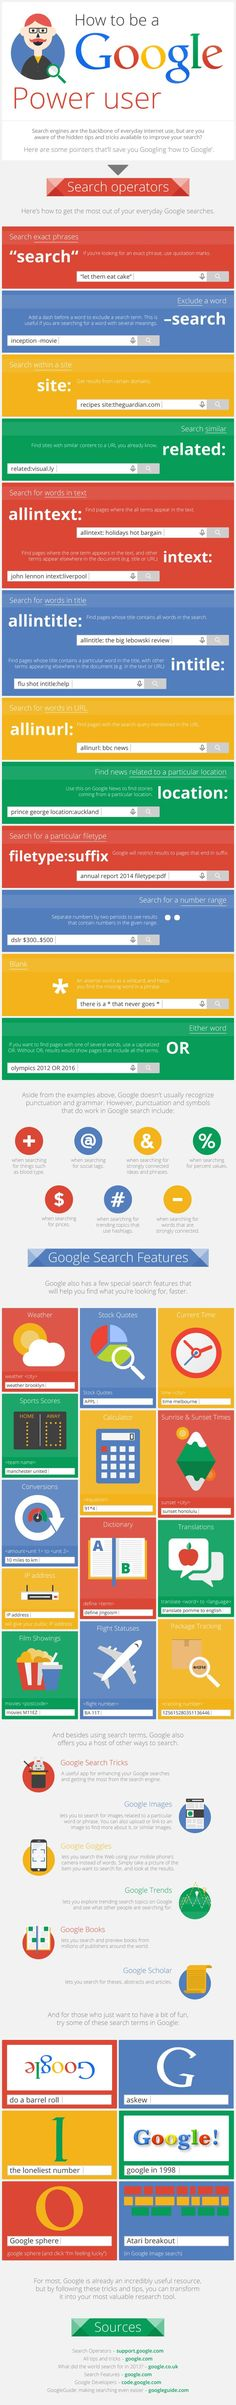 Google-Search-Tricks | 31 Awesome Google Search Tricks Used By Experts